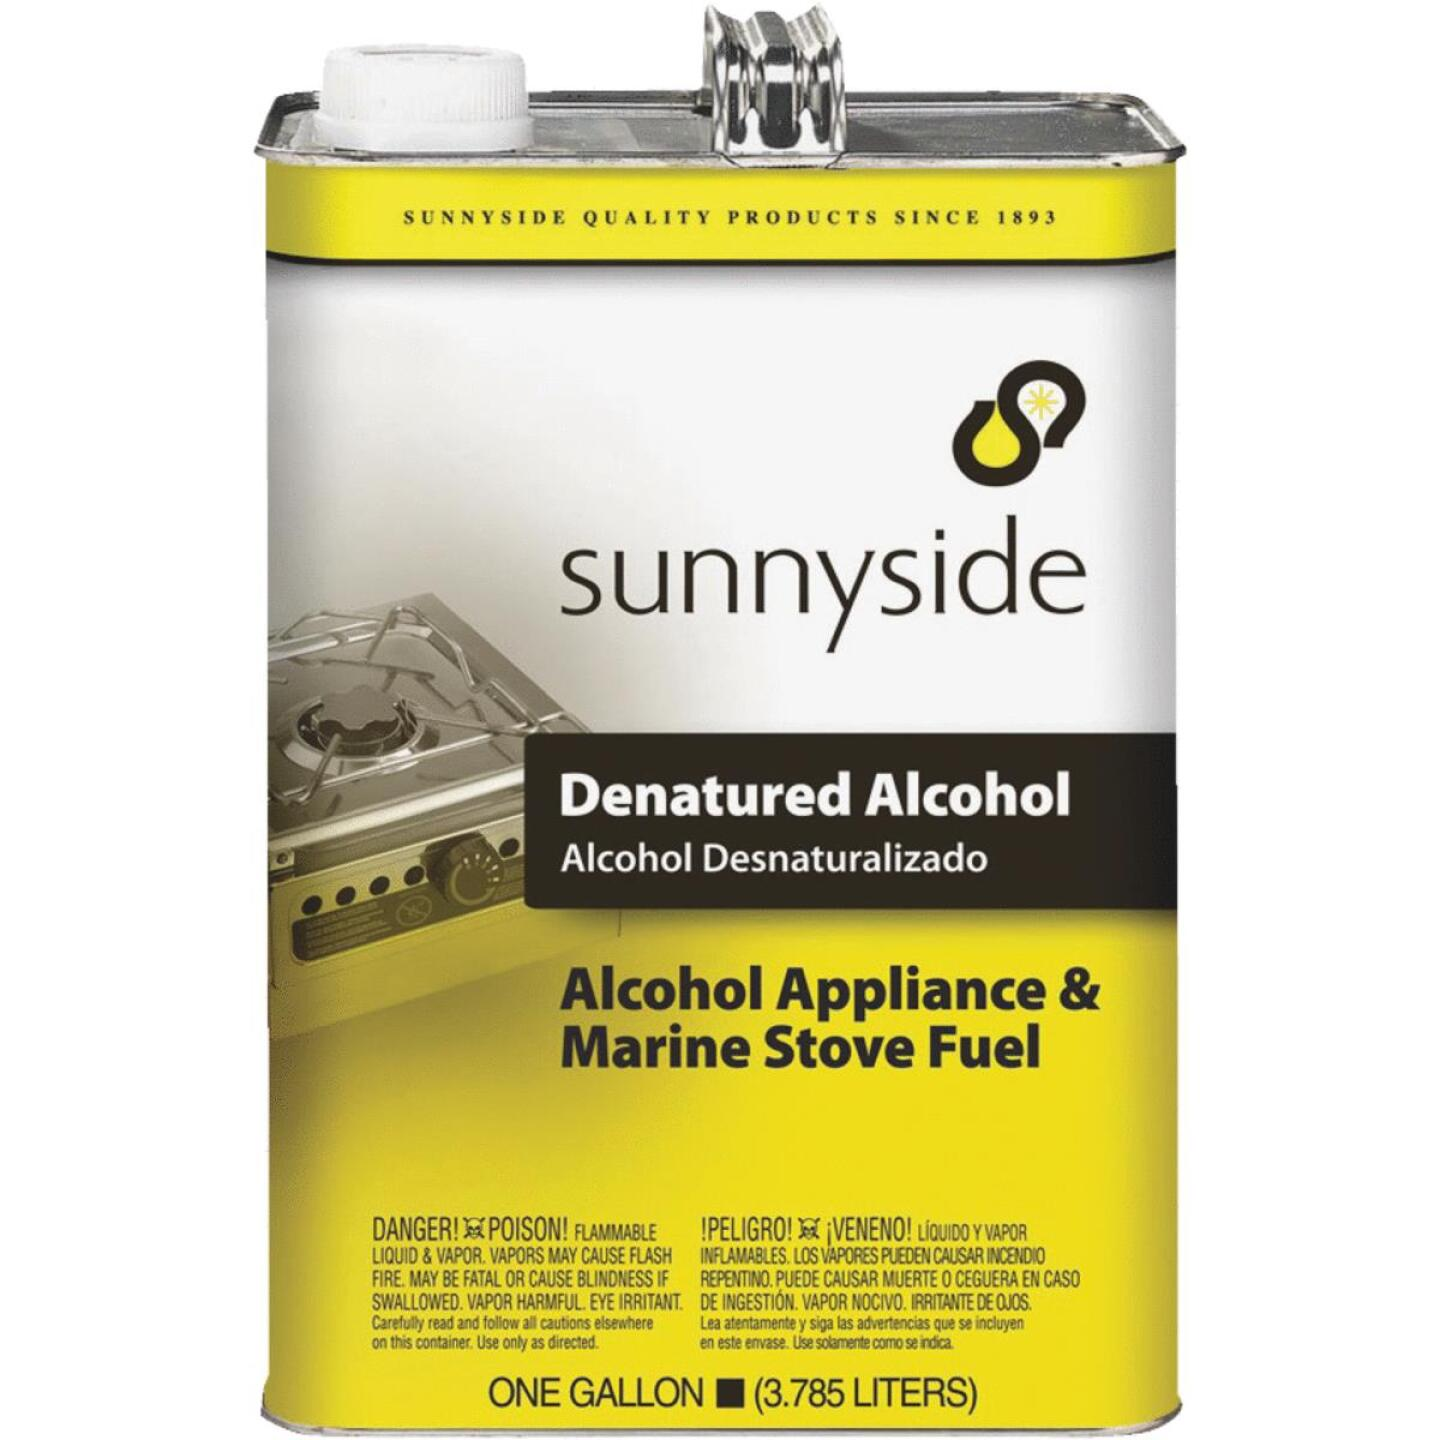 Sunnyside Denatured Alcohol Solvent, Gallon Image 1